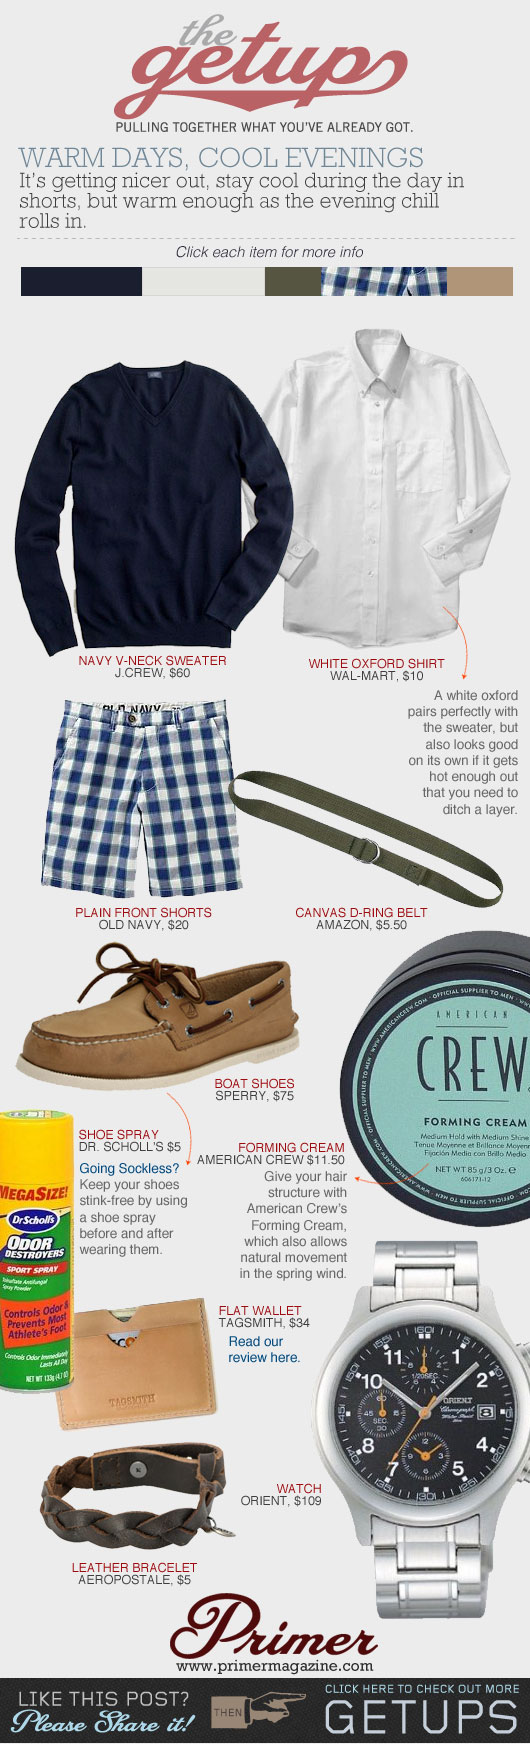 The Getup Shorts - blue sweater, white oxford, blue plaid shorts, boat shoes